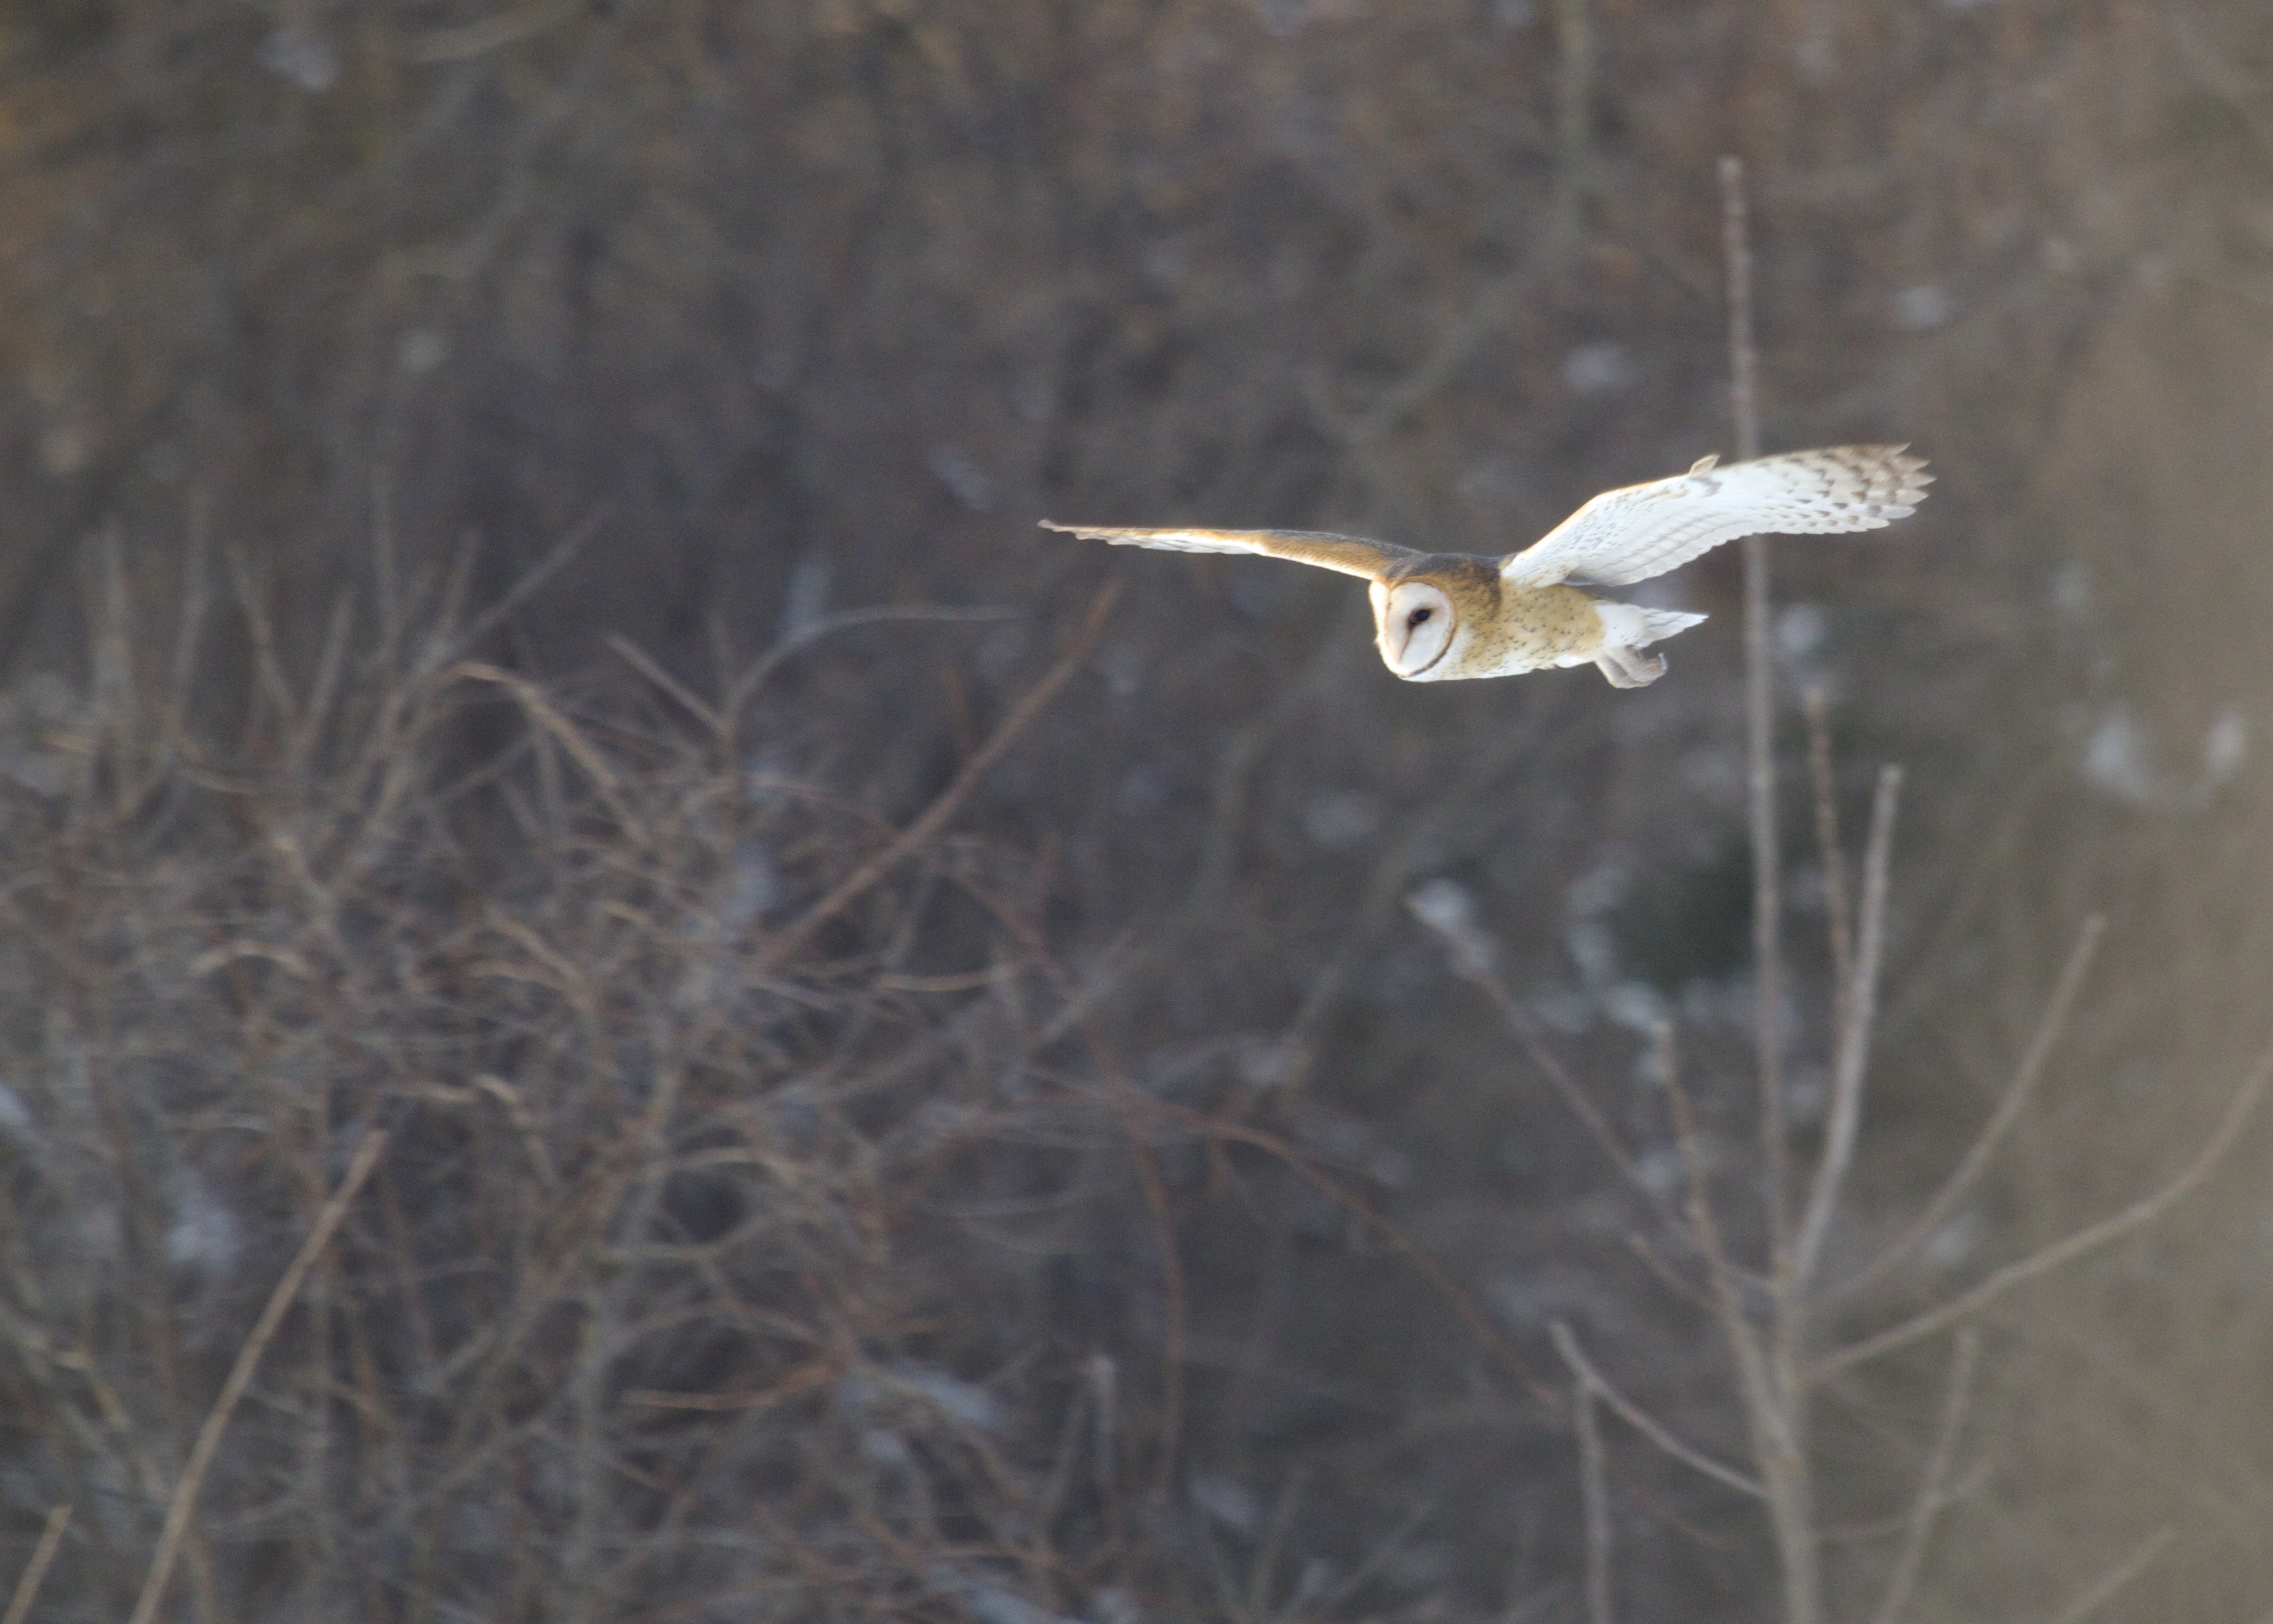 Barn Owl in flight, Orange County NY, 2/14/14.